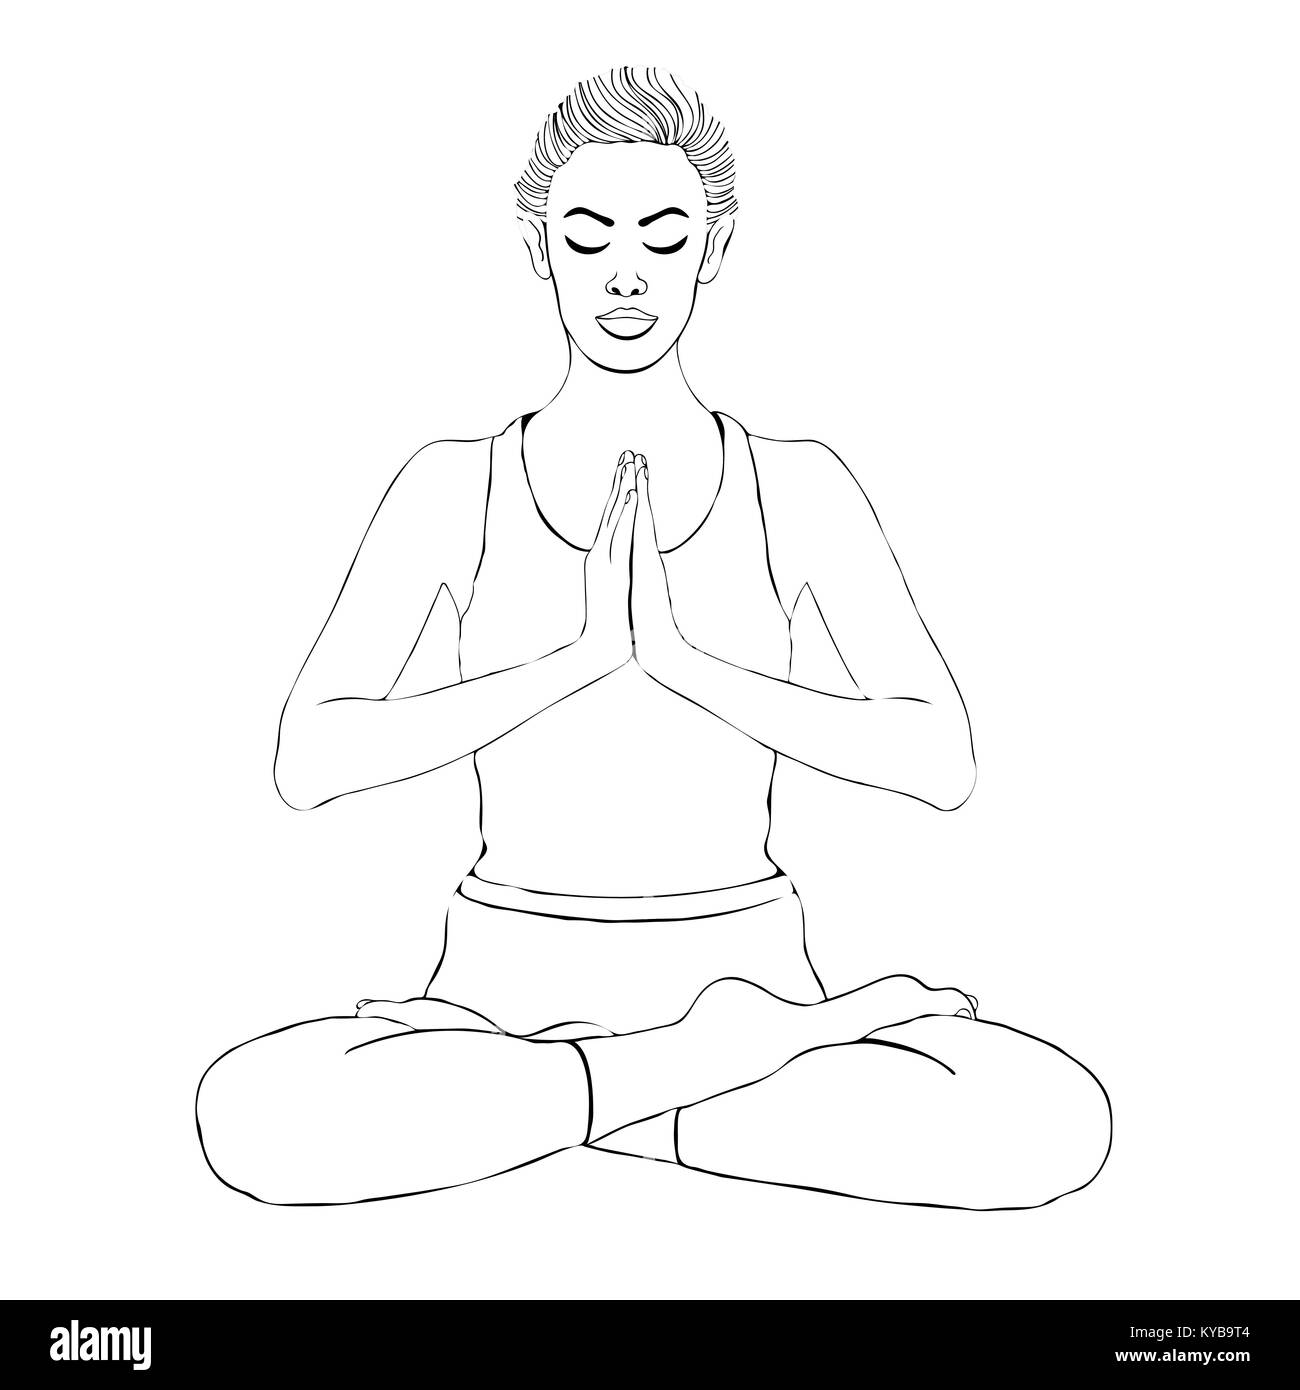 Sketch Yoga Woman High Resolution Stock Photography And Images Alamy